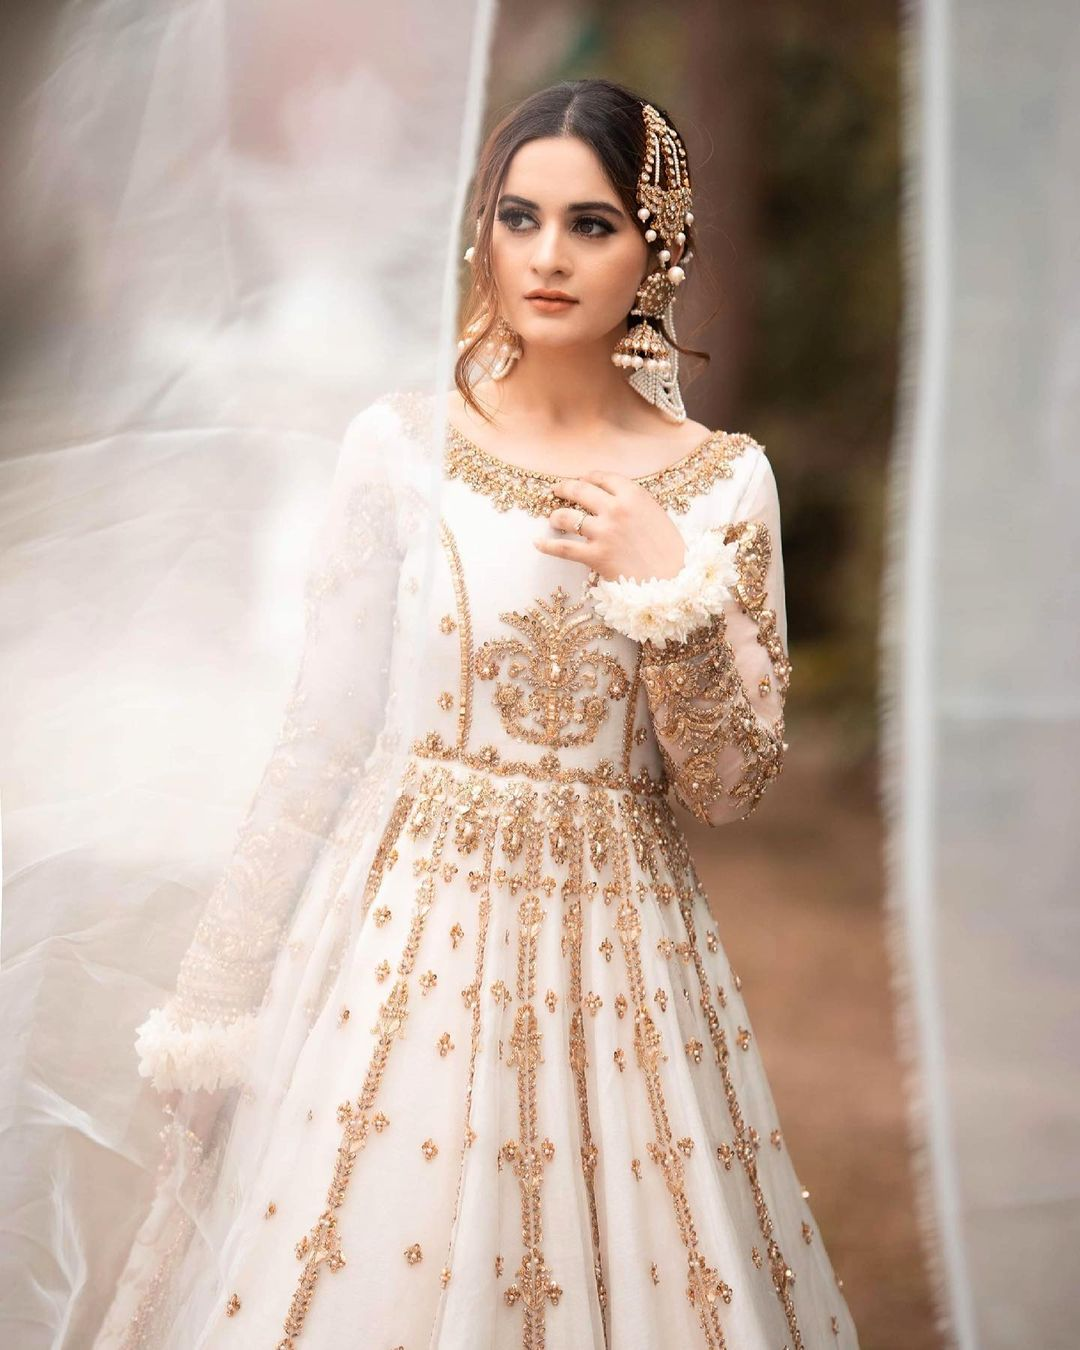 Aiman Khan is Looking Stunning in Her Latest Photoshoot